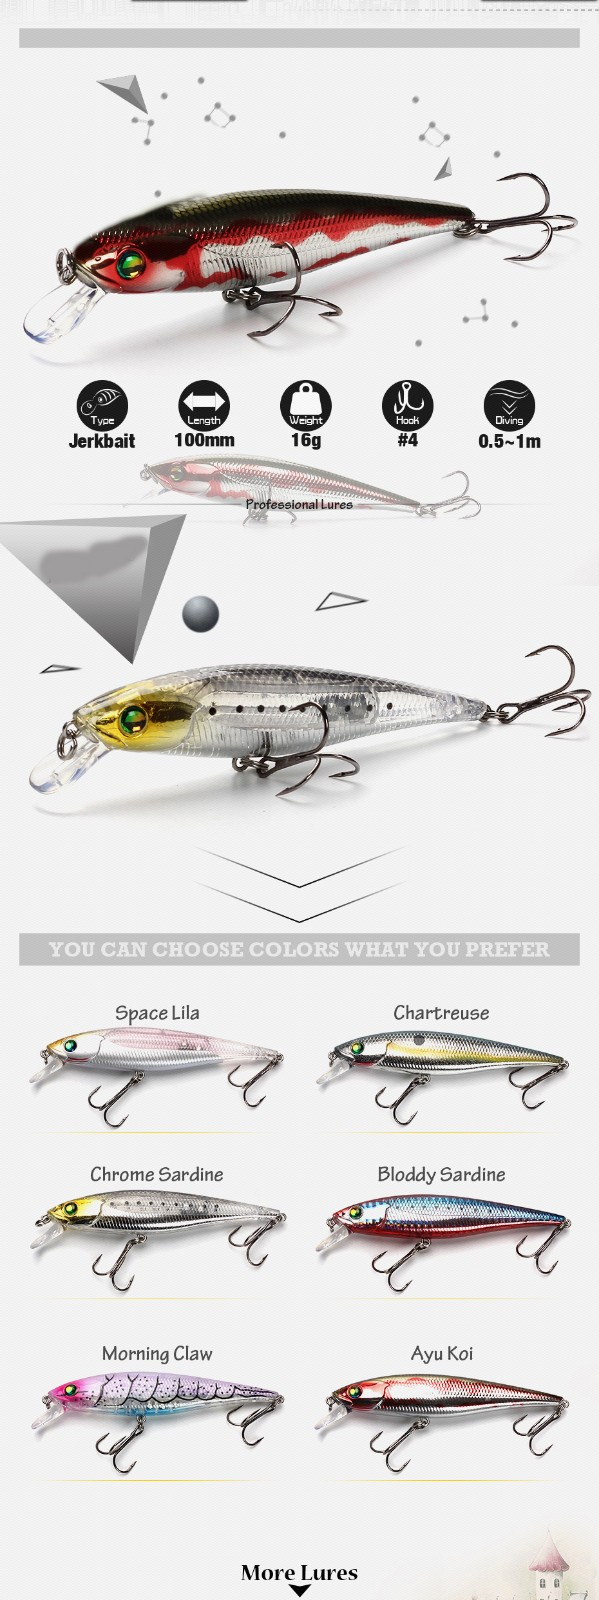 XIN-V -Xin-v Minnow Lure 100mm 16g Mnnw40 Floating Minnow Lure